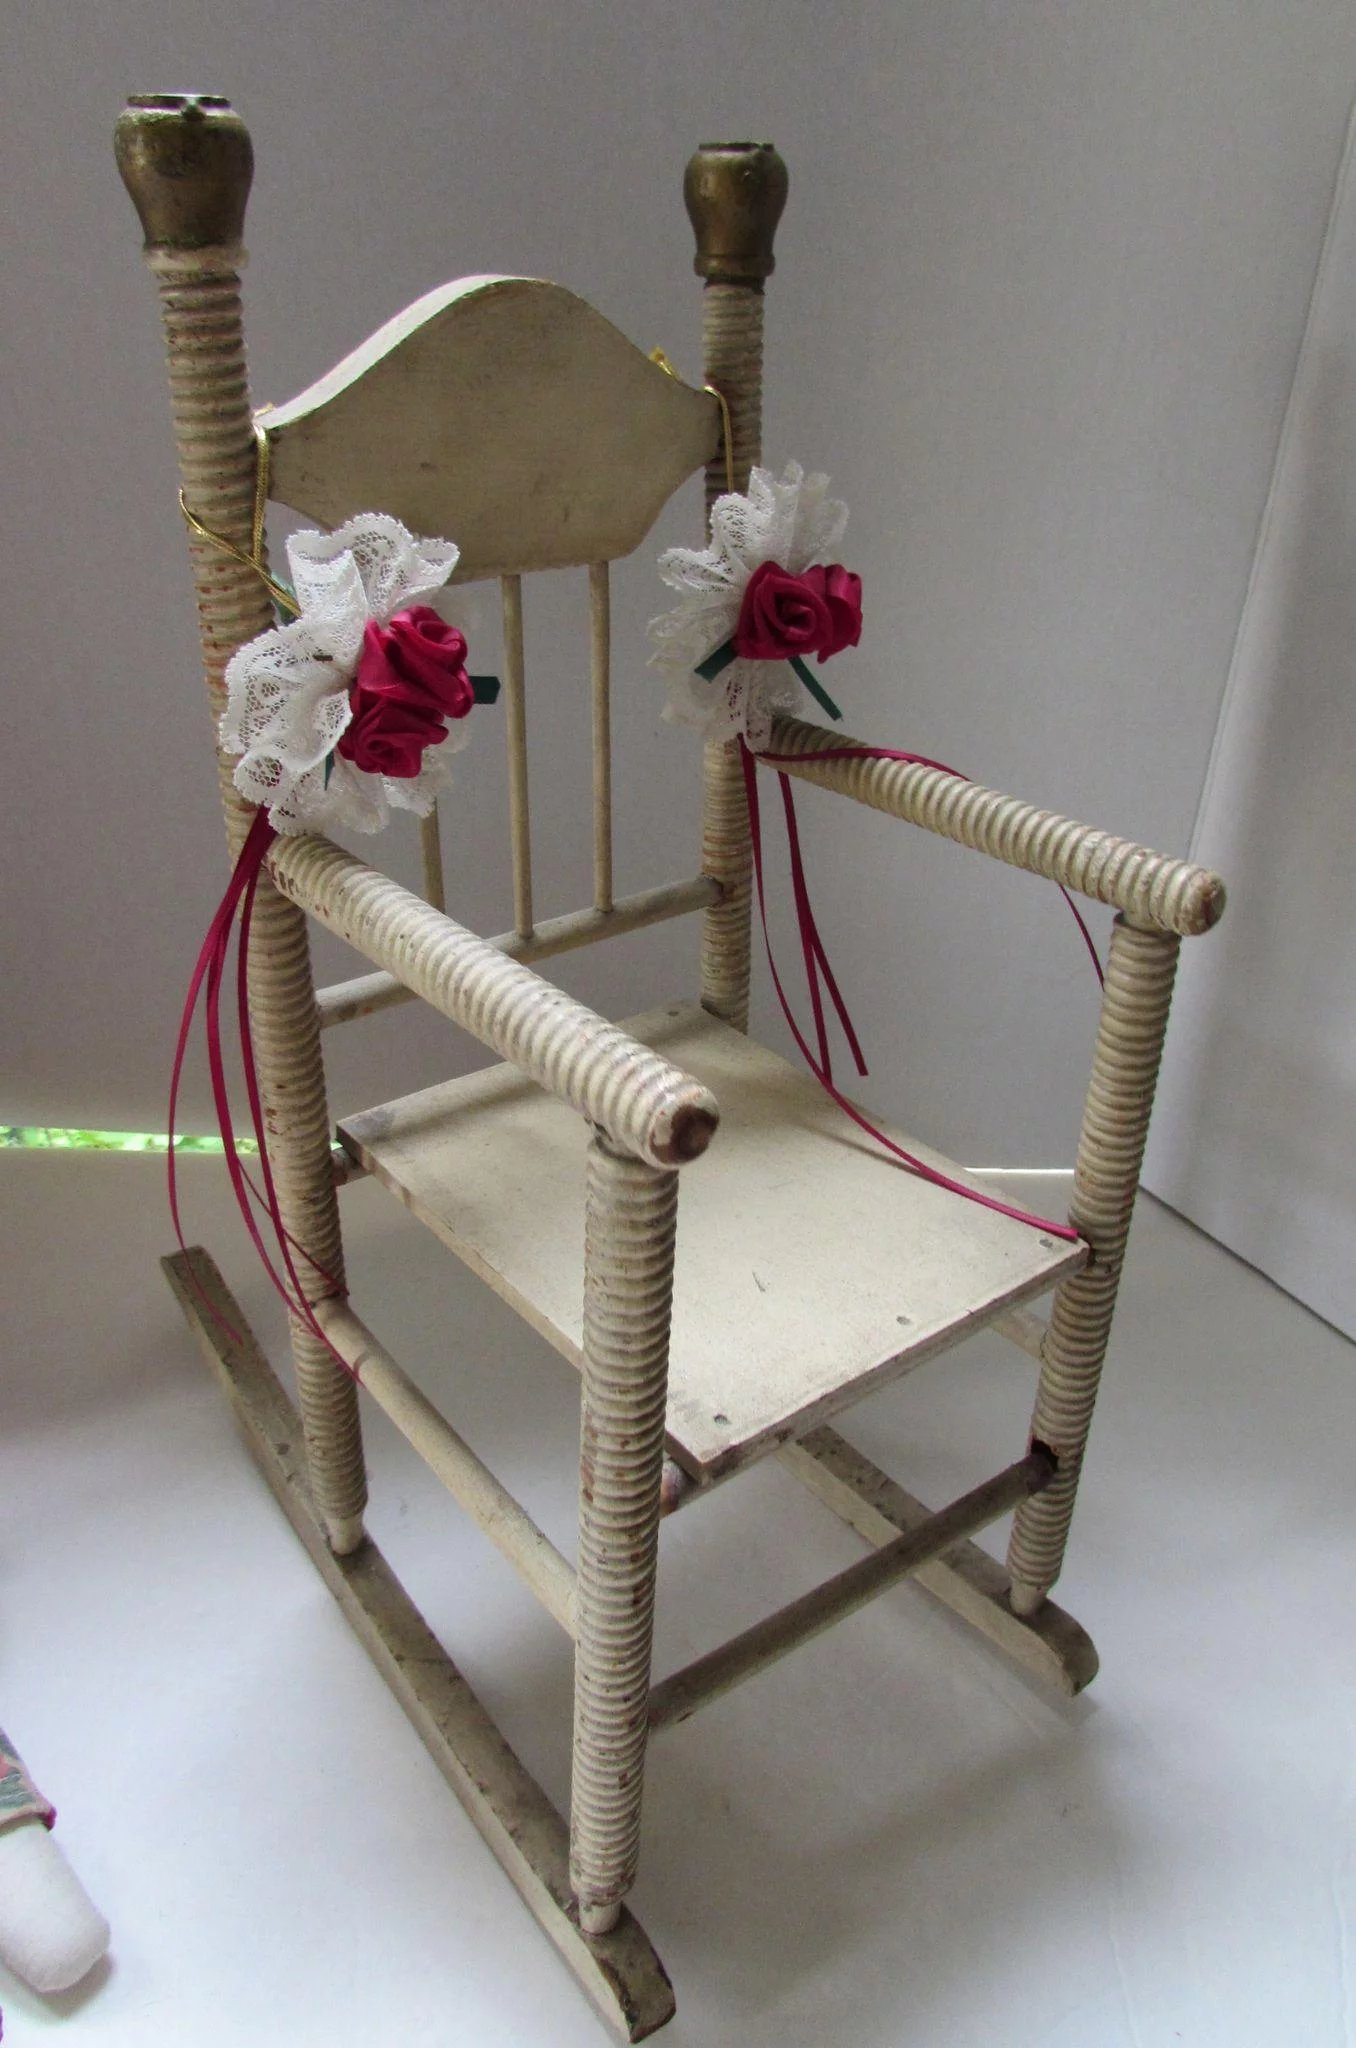 Wood Doll Rocking Chair Painted In Cream With Twisted